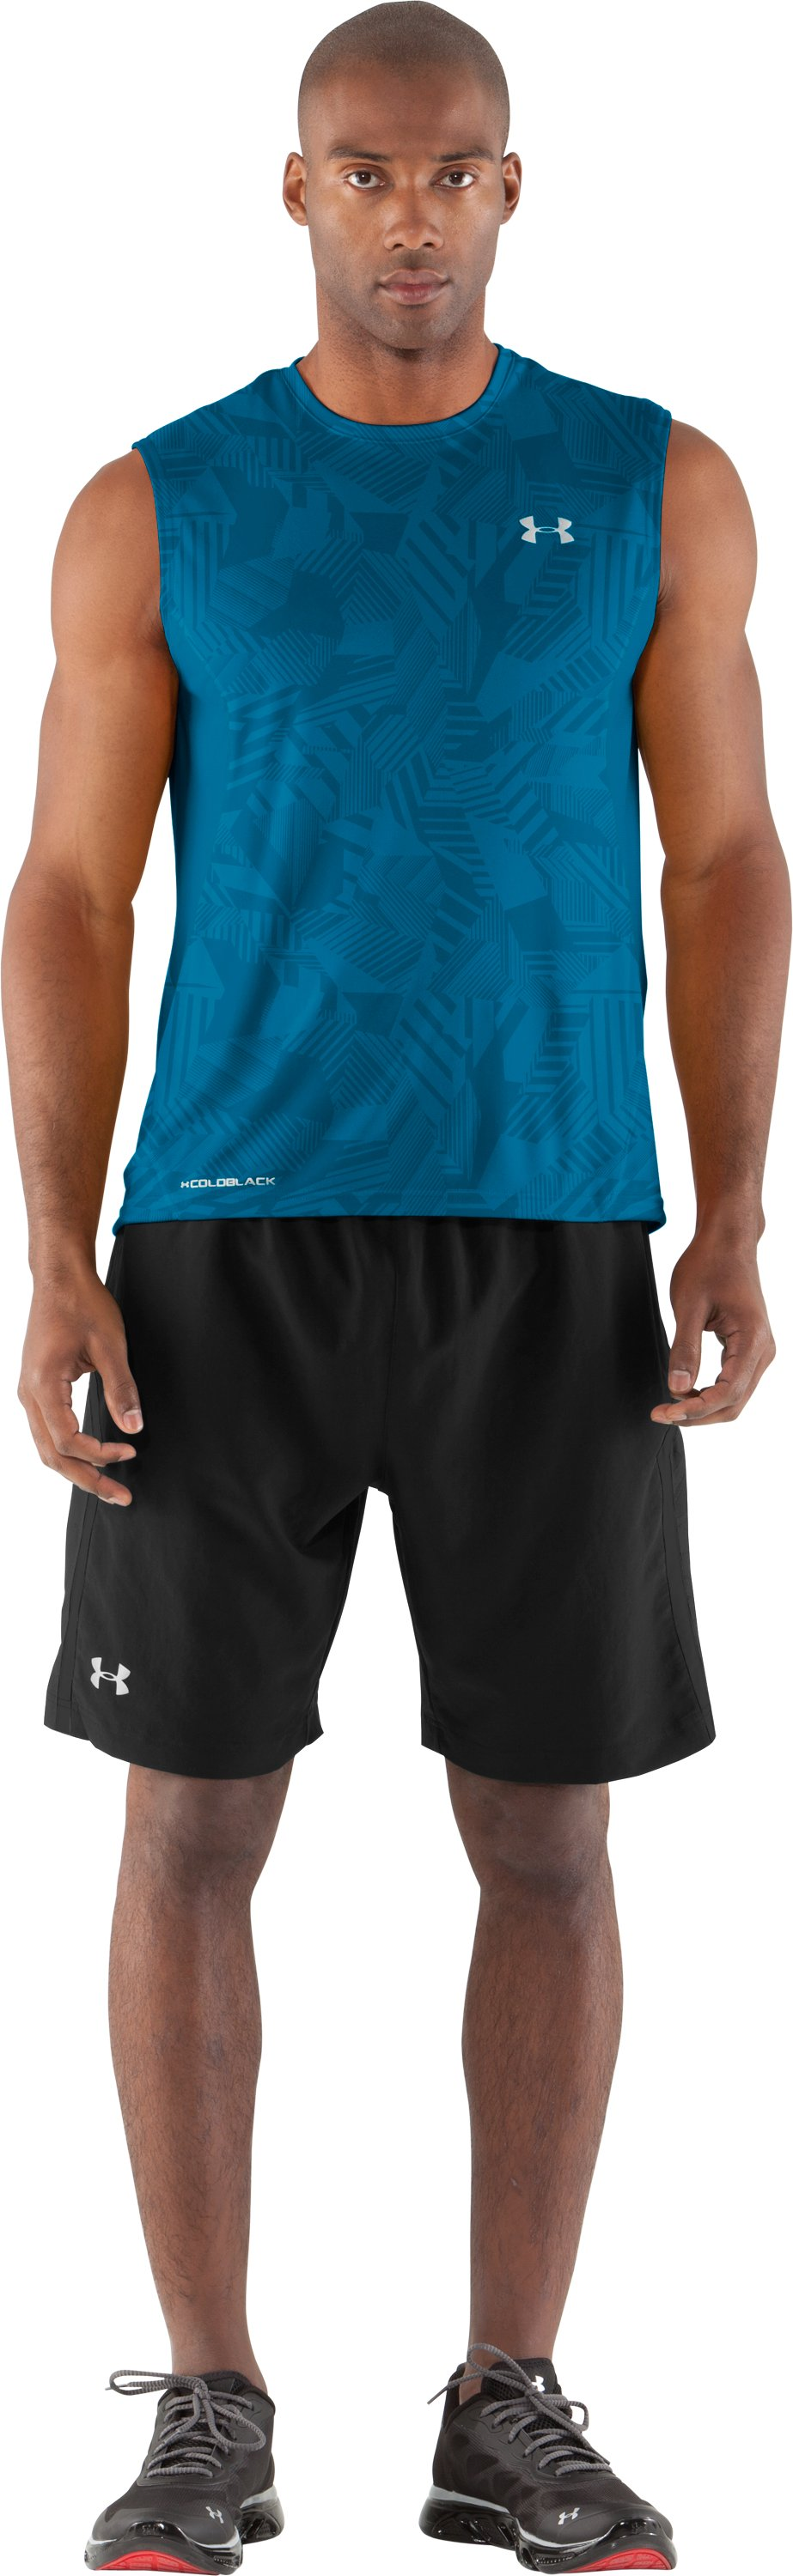 Men's coldblack® Engage Run Sleeveless T-Shirt, SNORKEL